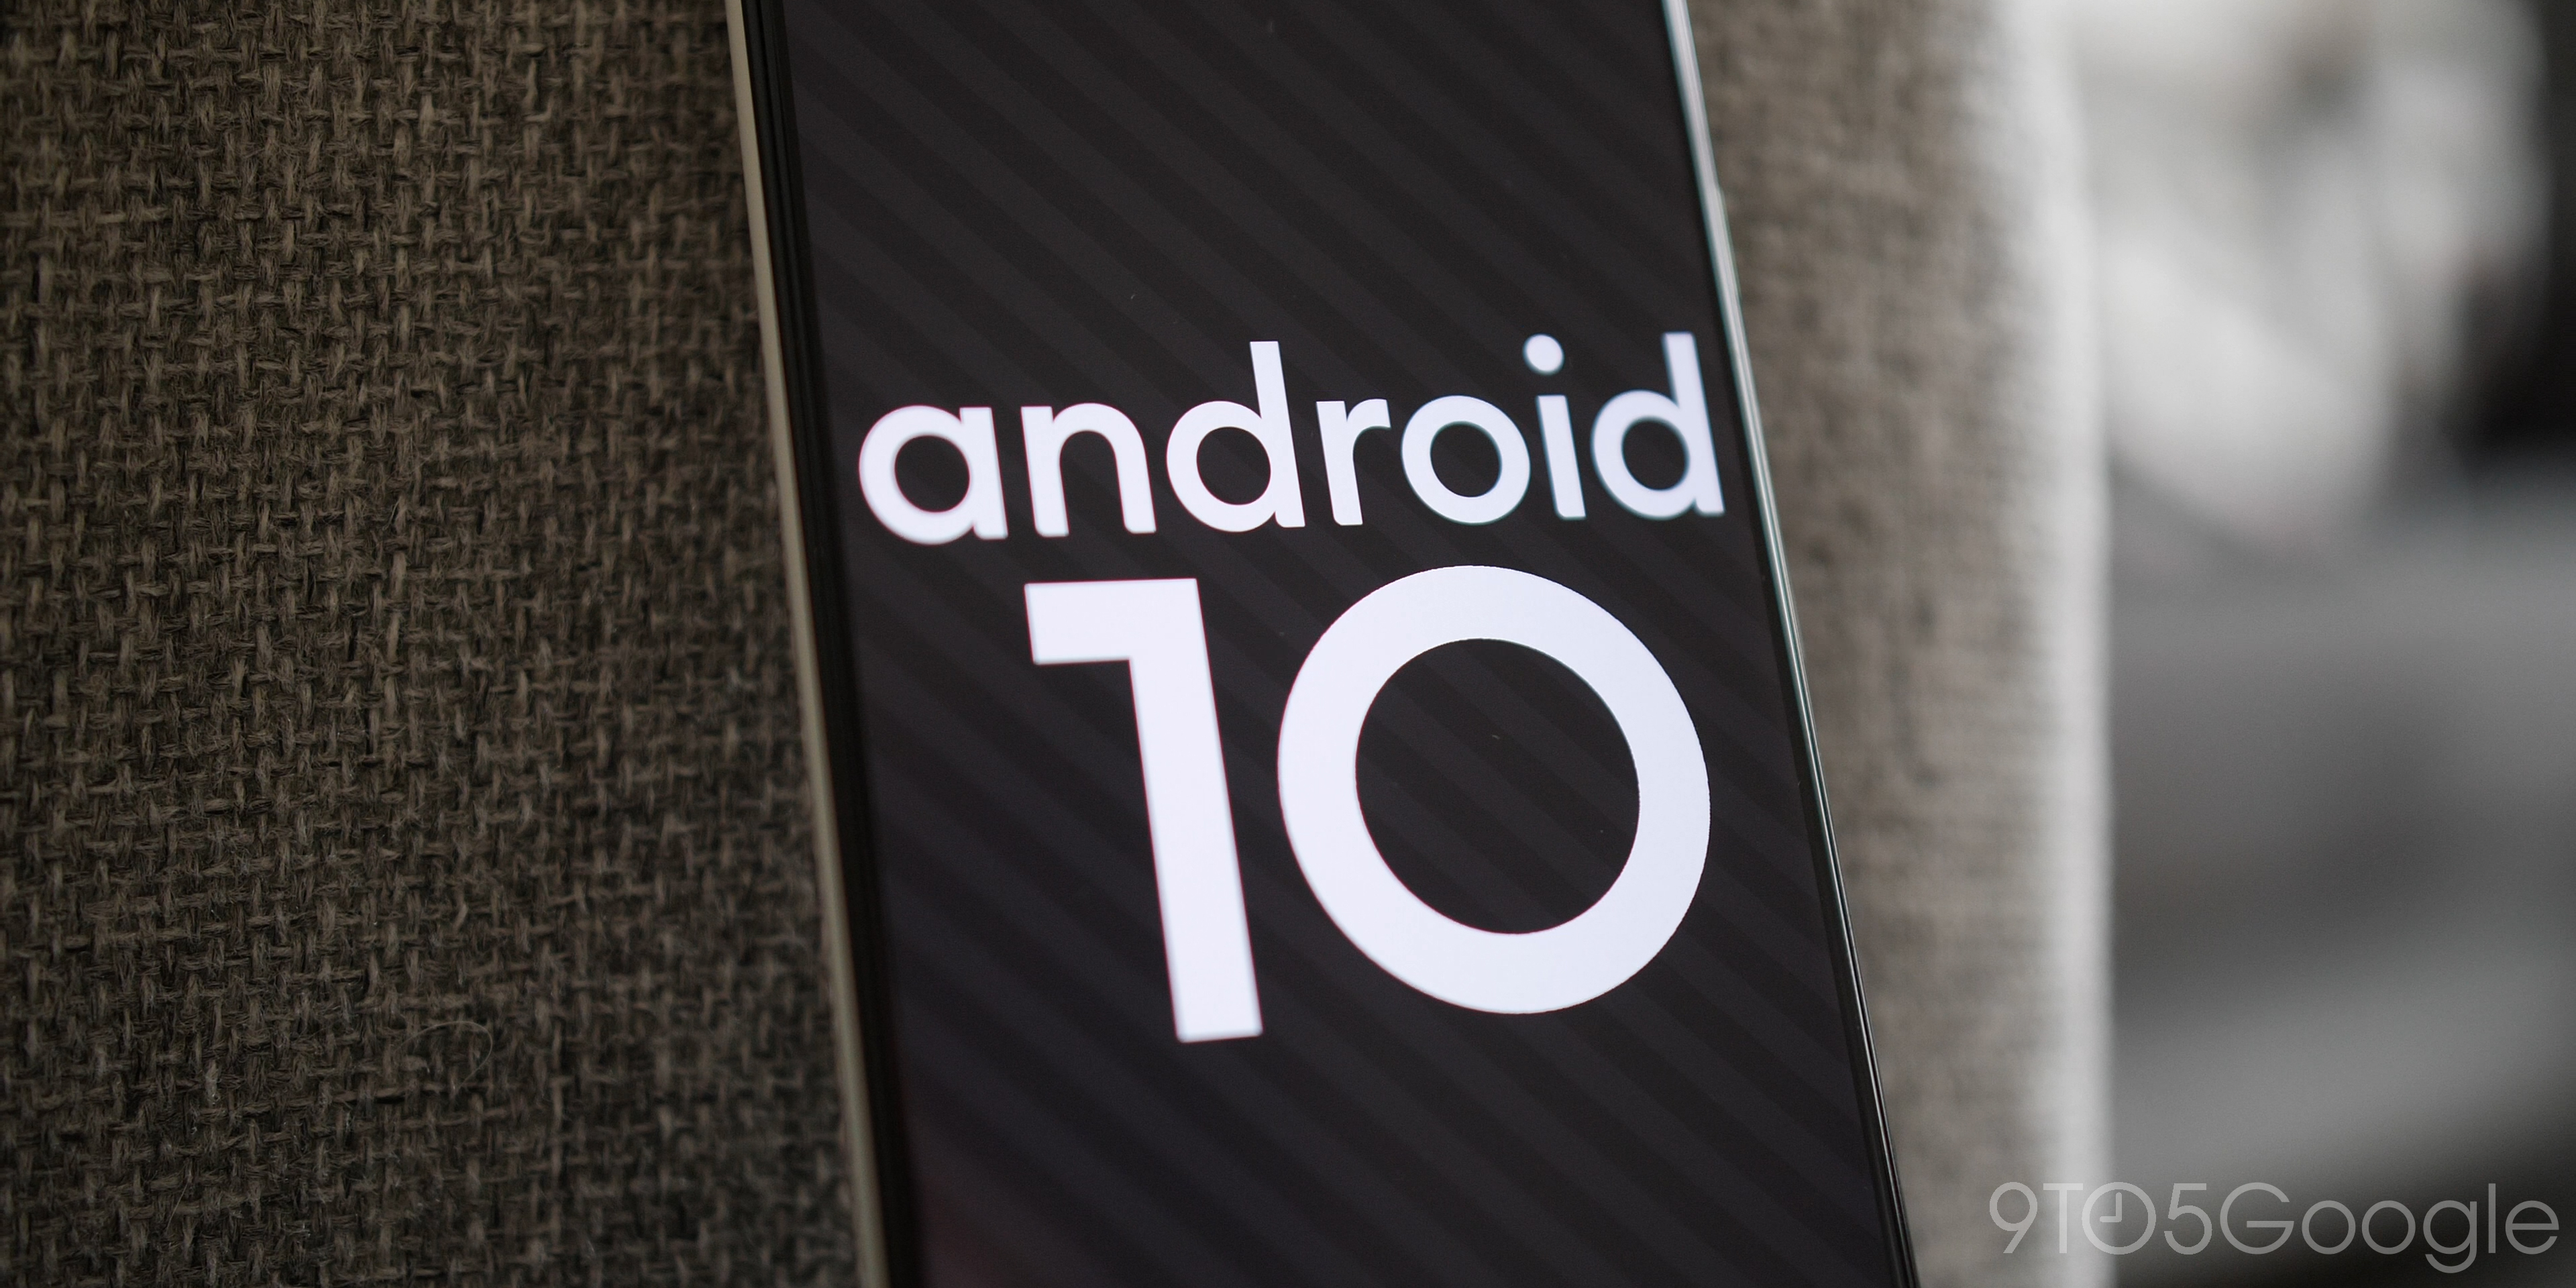 How to sideload Android 10 OTA on your Google Pixel smartphone